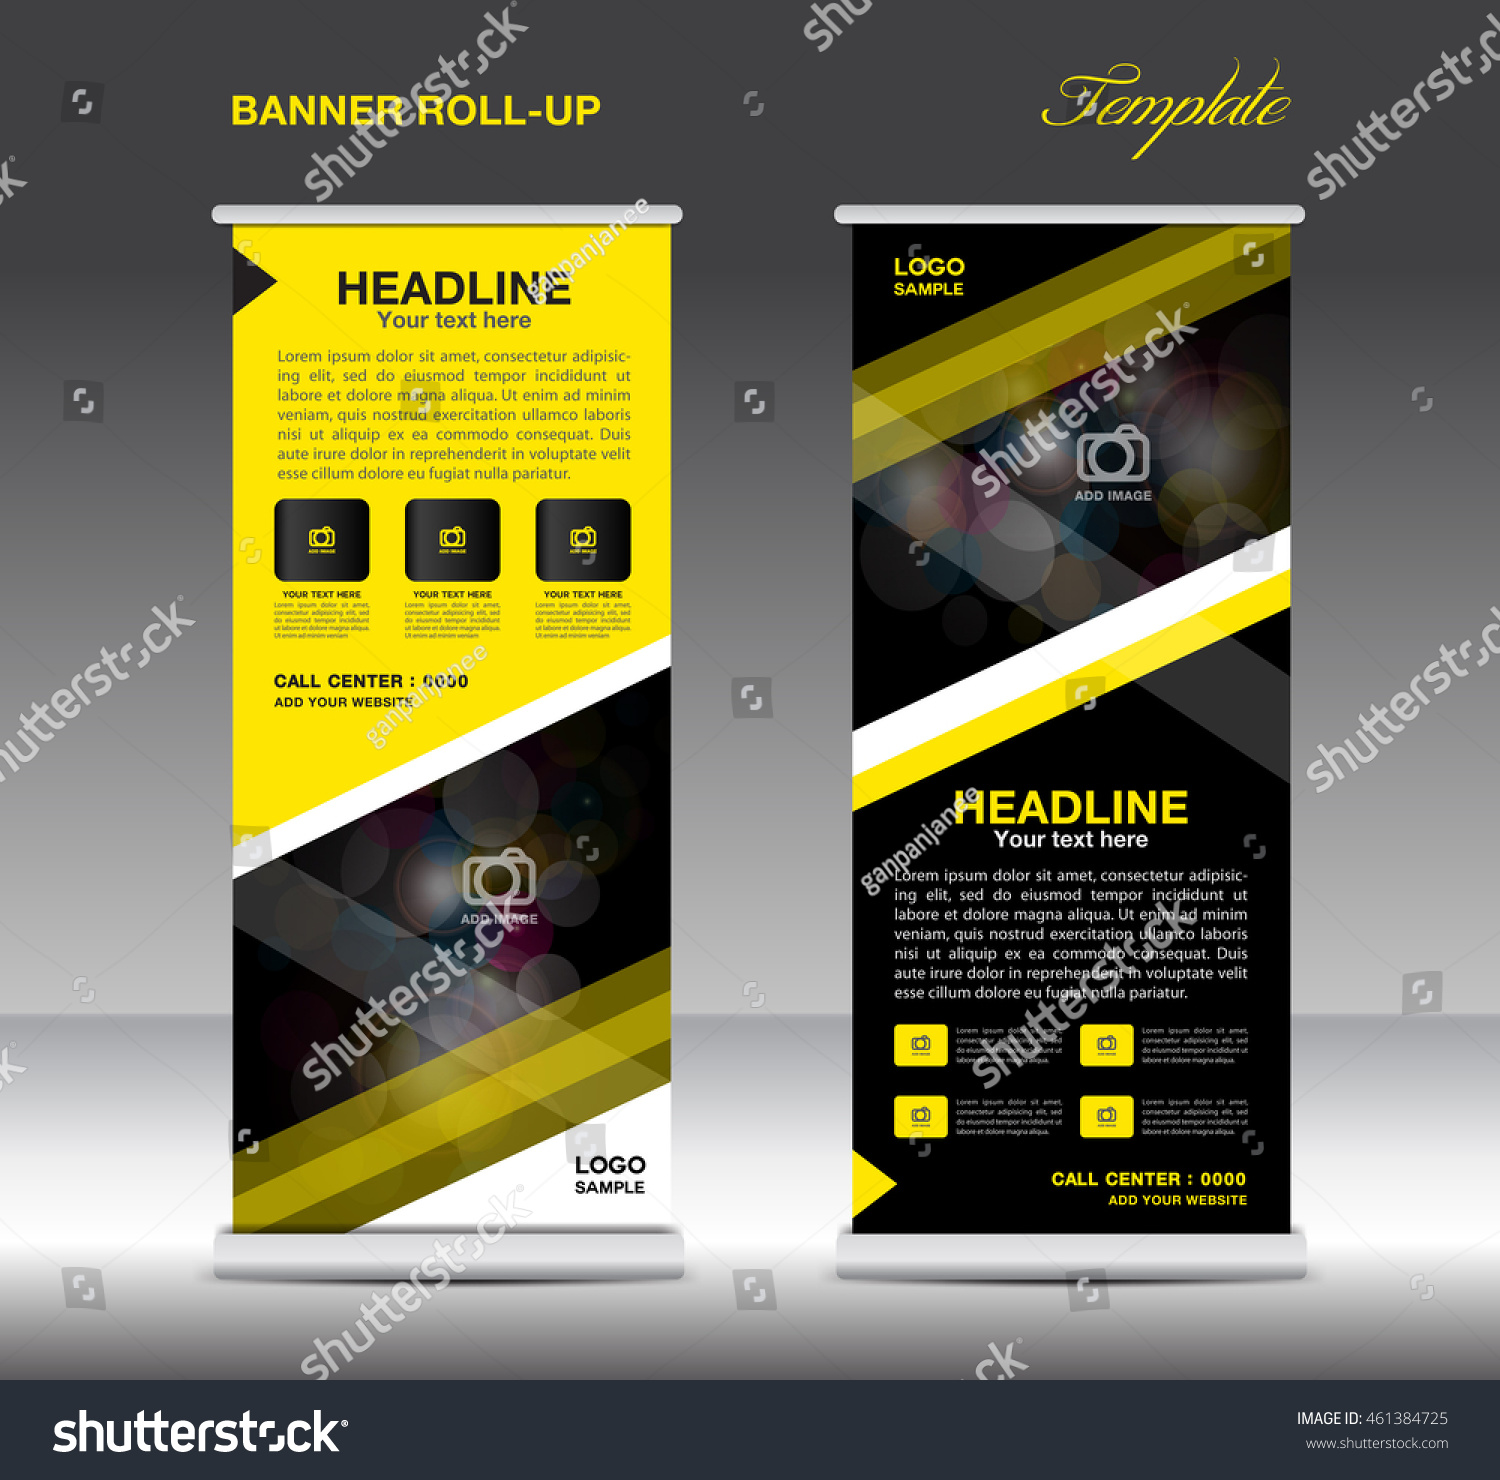 yellow black roll banner template vector stock vector 461384725 yellow and black roll up banner template vector standy design display advertisement flyer